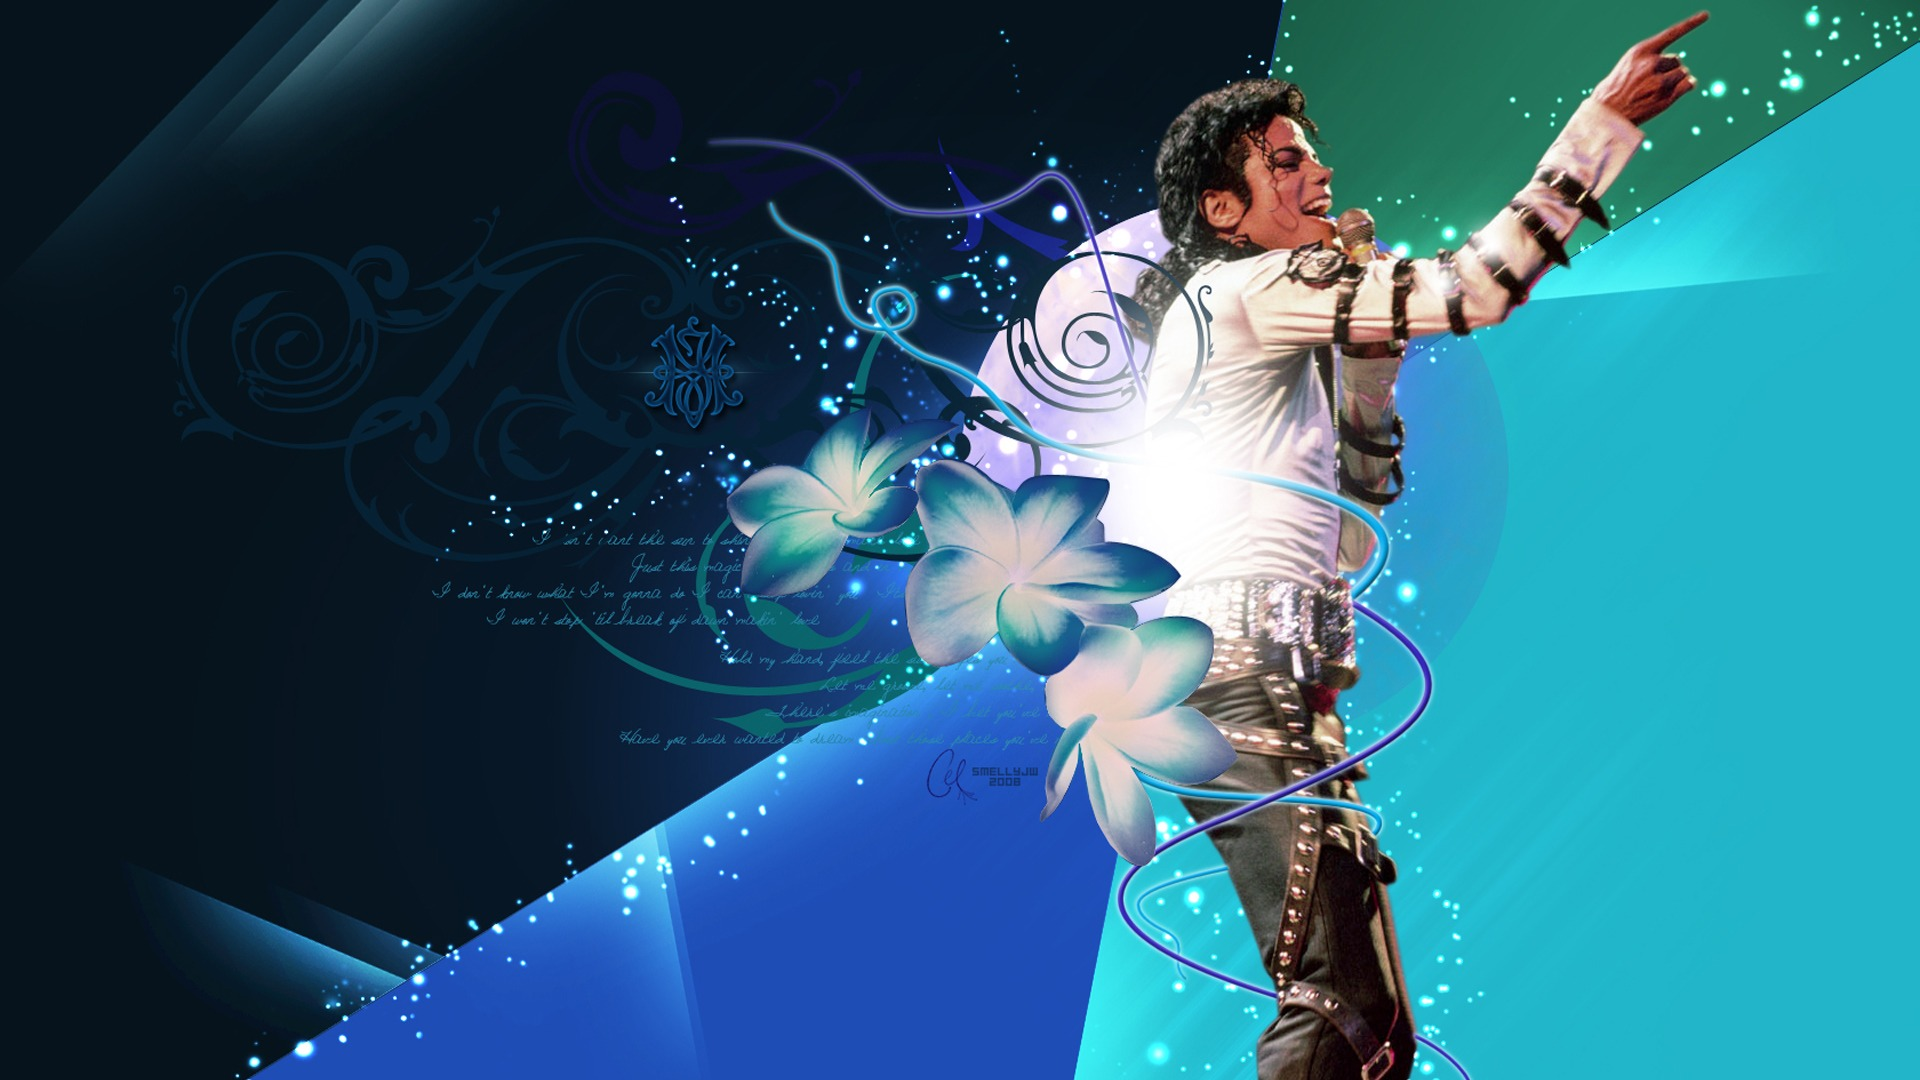 Michael Jackson Wallpaper Male Celebrities Wallpapers